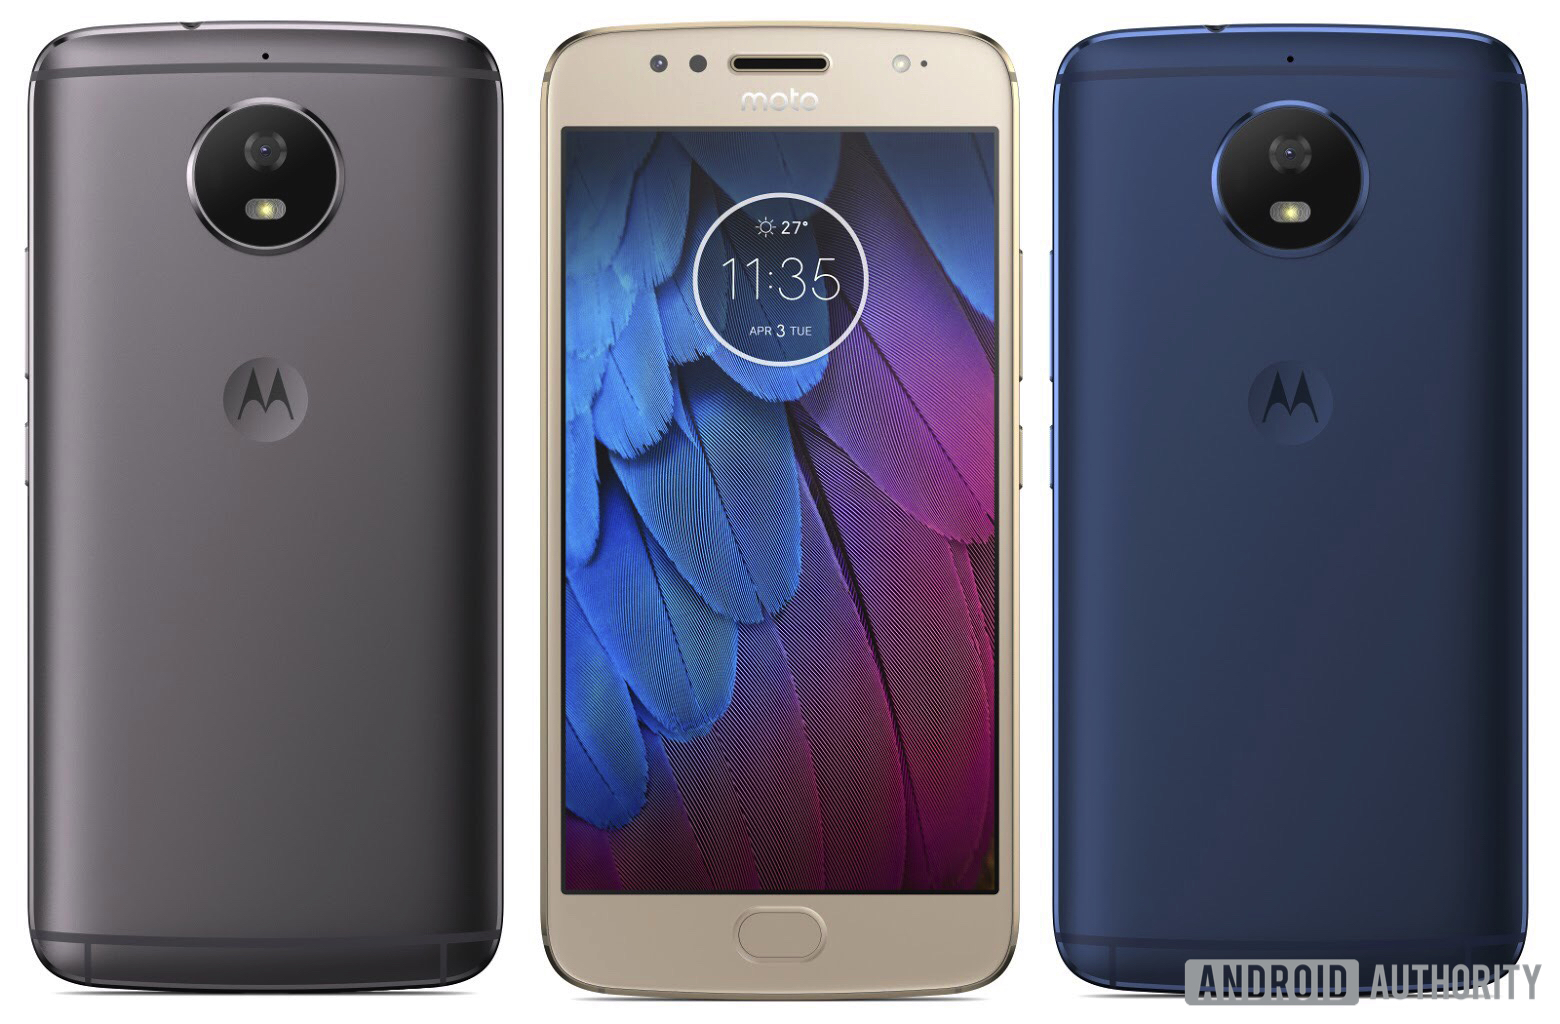 Motorola Moto G5S Wallpapers: More Motorola Images Leak, This Time Of The Moto G5S